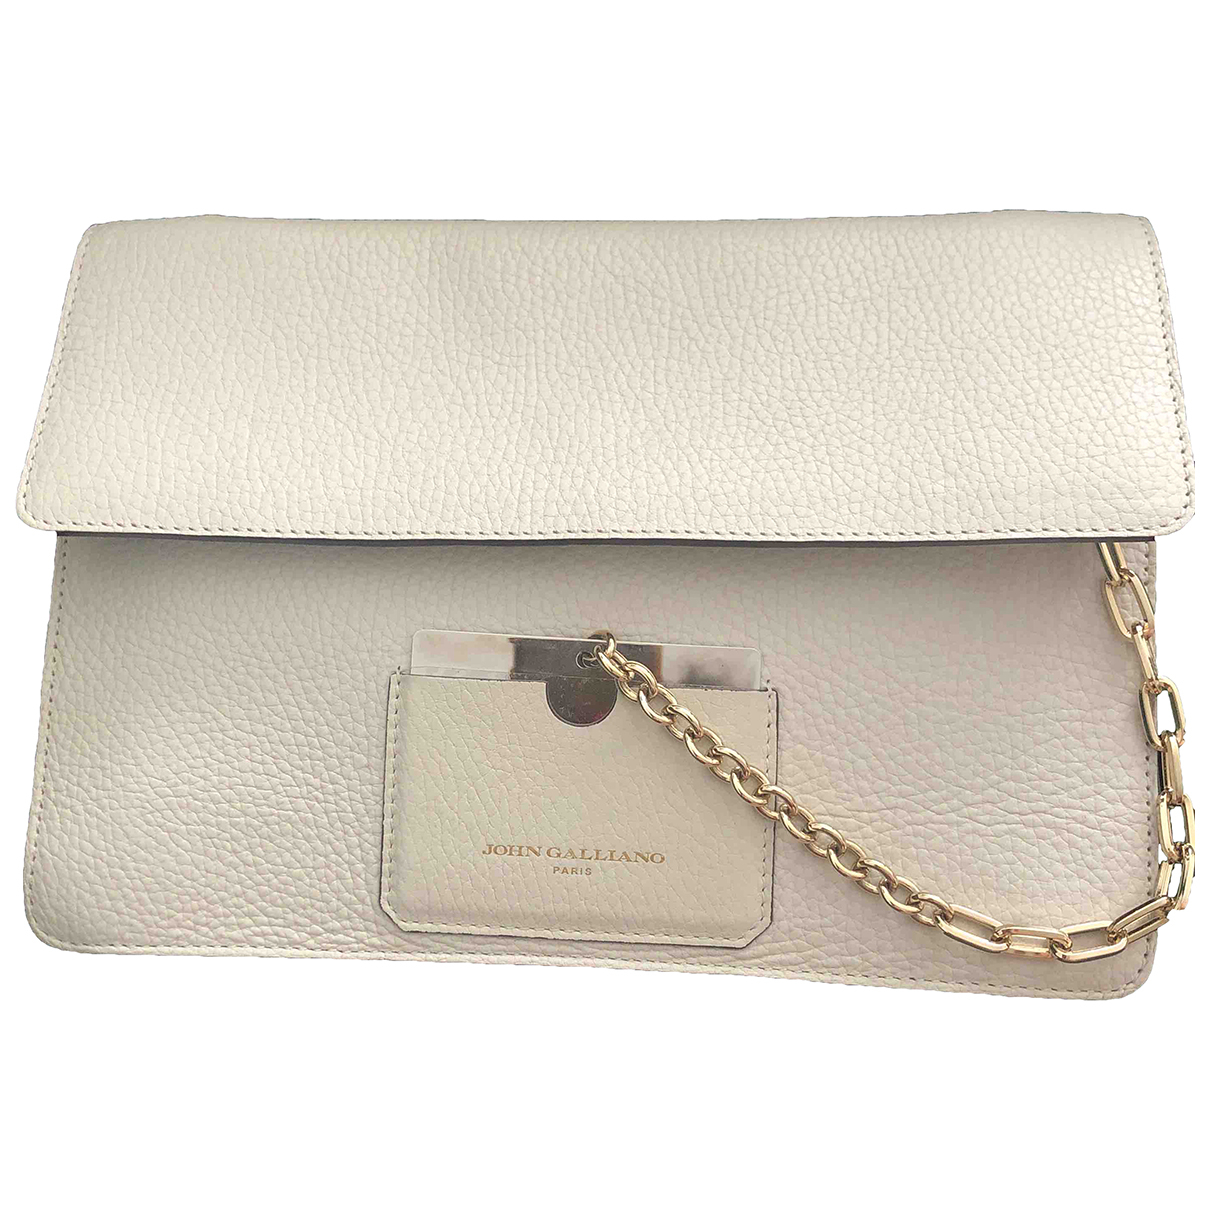 John Galliano \N Clutch in  Beige Leder